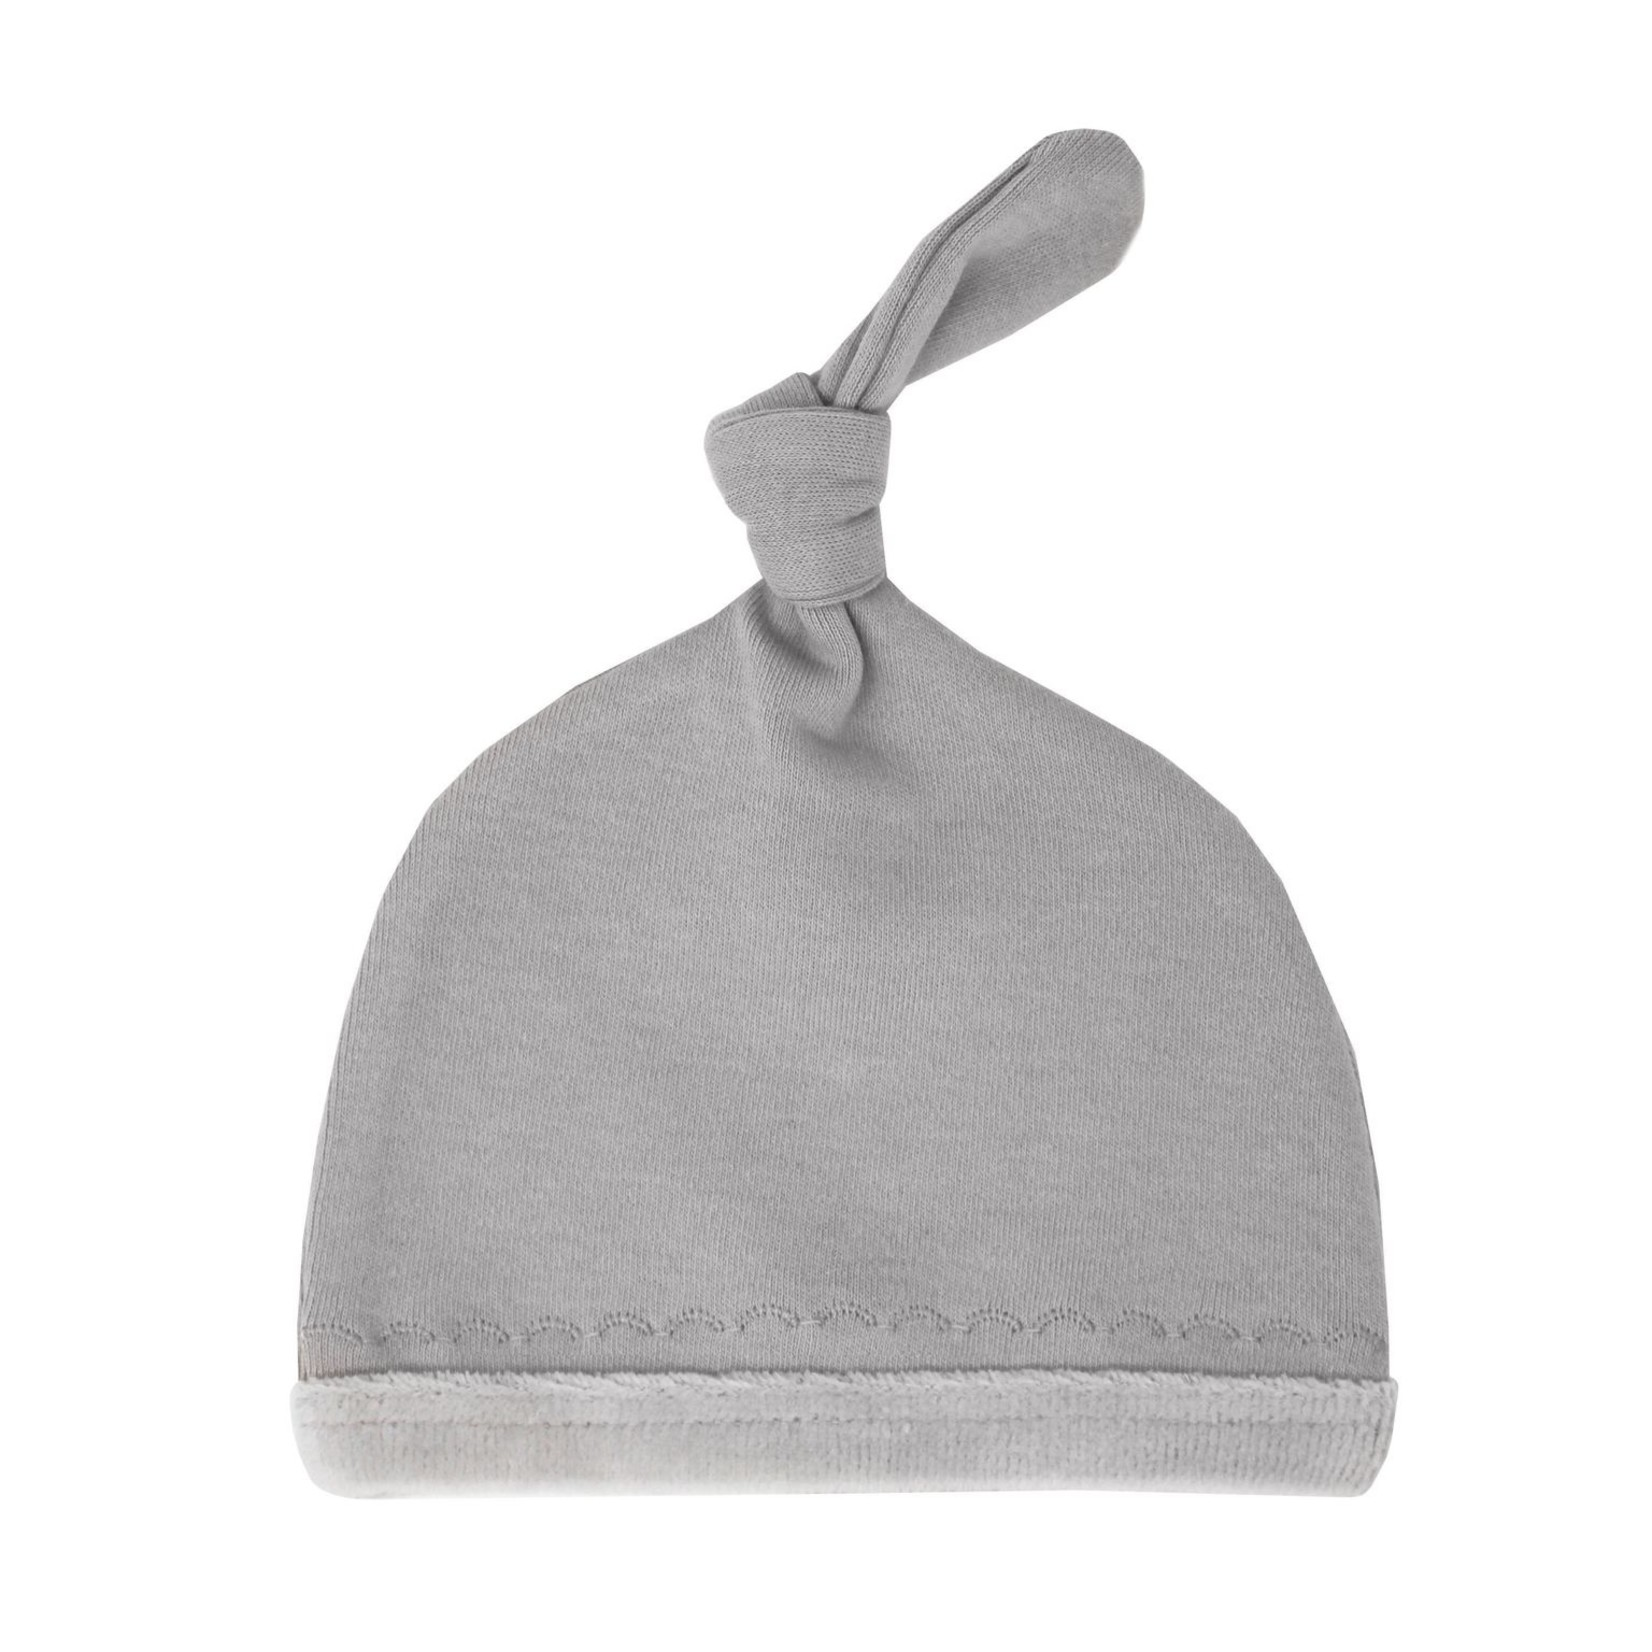 L'oved Baby Velveteen Top-Knot Hat